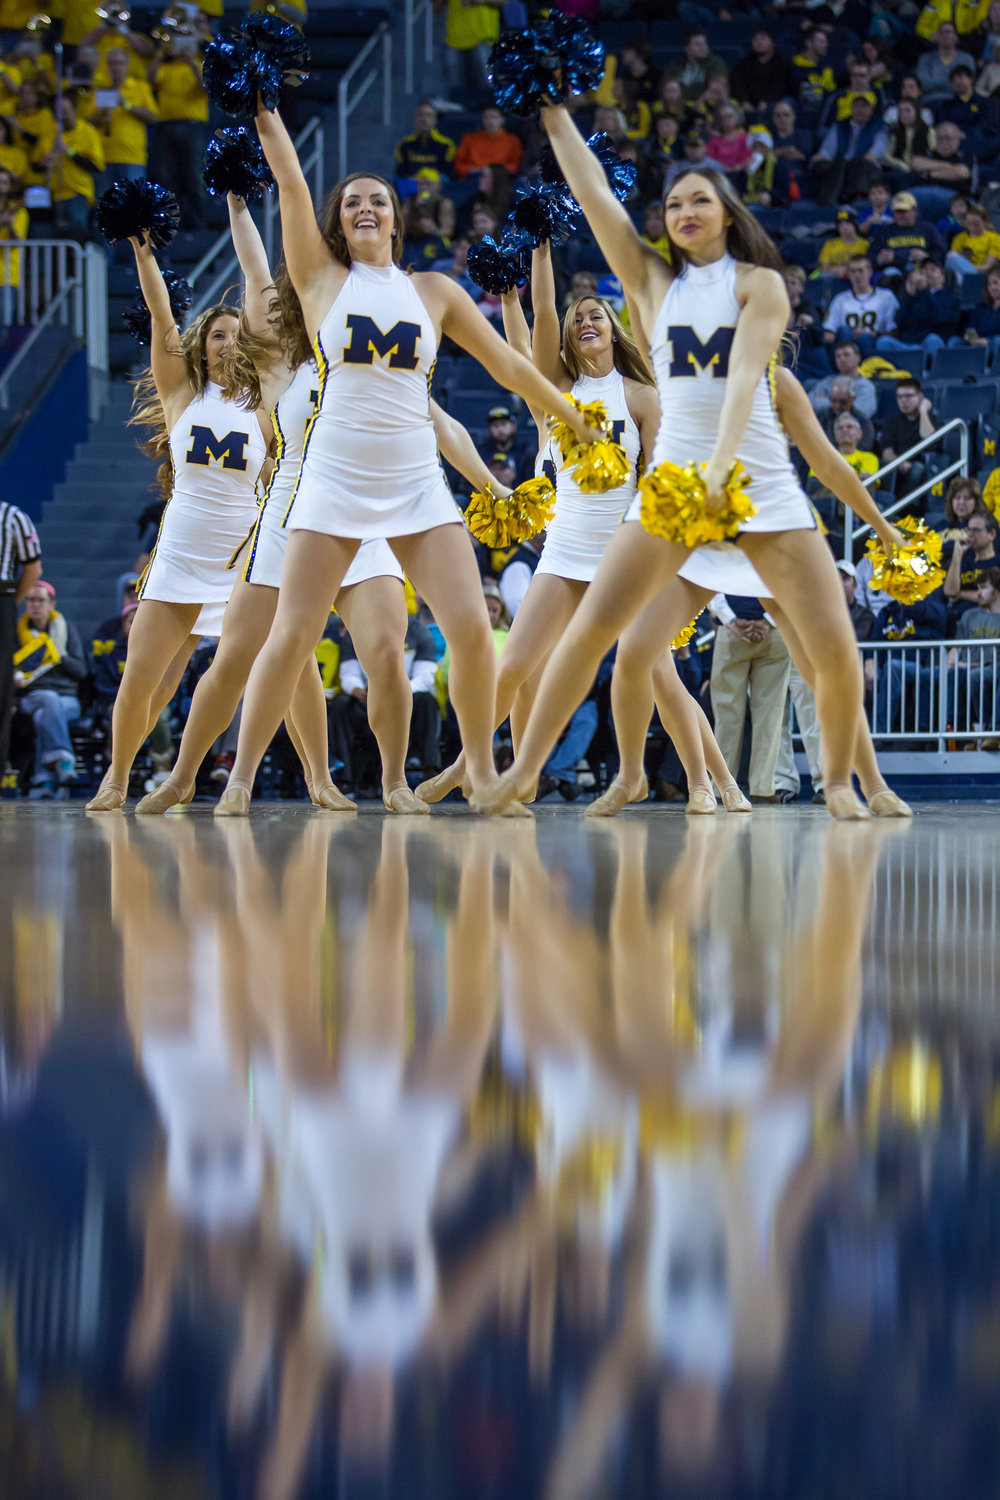 The Michigan dance team dances during a timeout during the second half of play at the Crisler Center on Saturday, December 17, 2016. The Michigan Wolverines beat the Maryland Eastern Shore Hawks 98-49. Matt Weigand | The Ann Arbor News